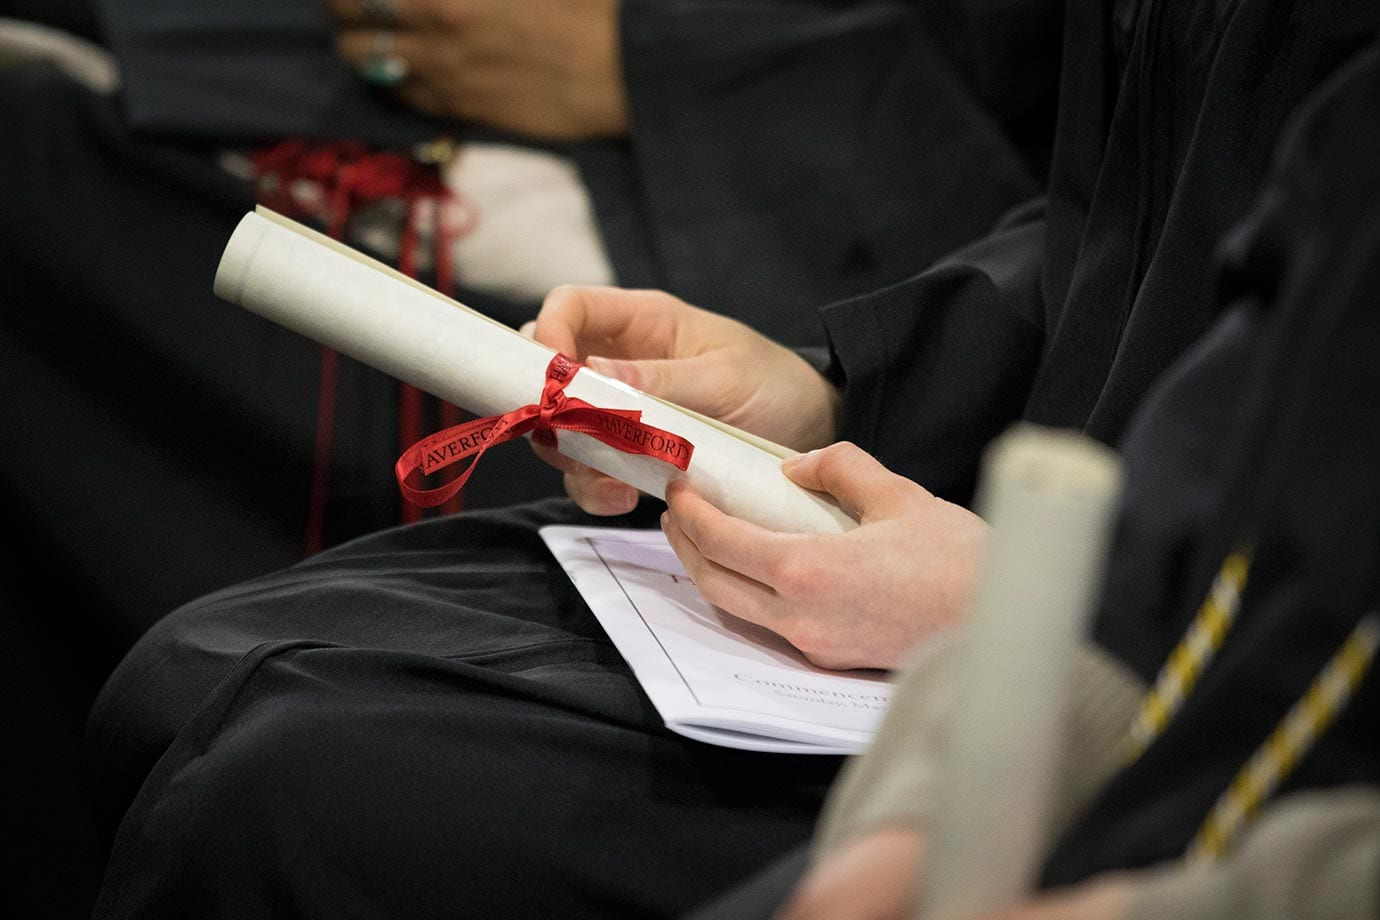 Student's hands holding a diploma